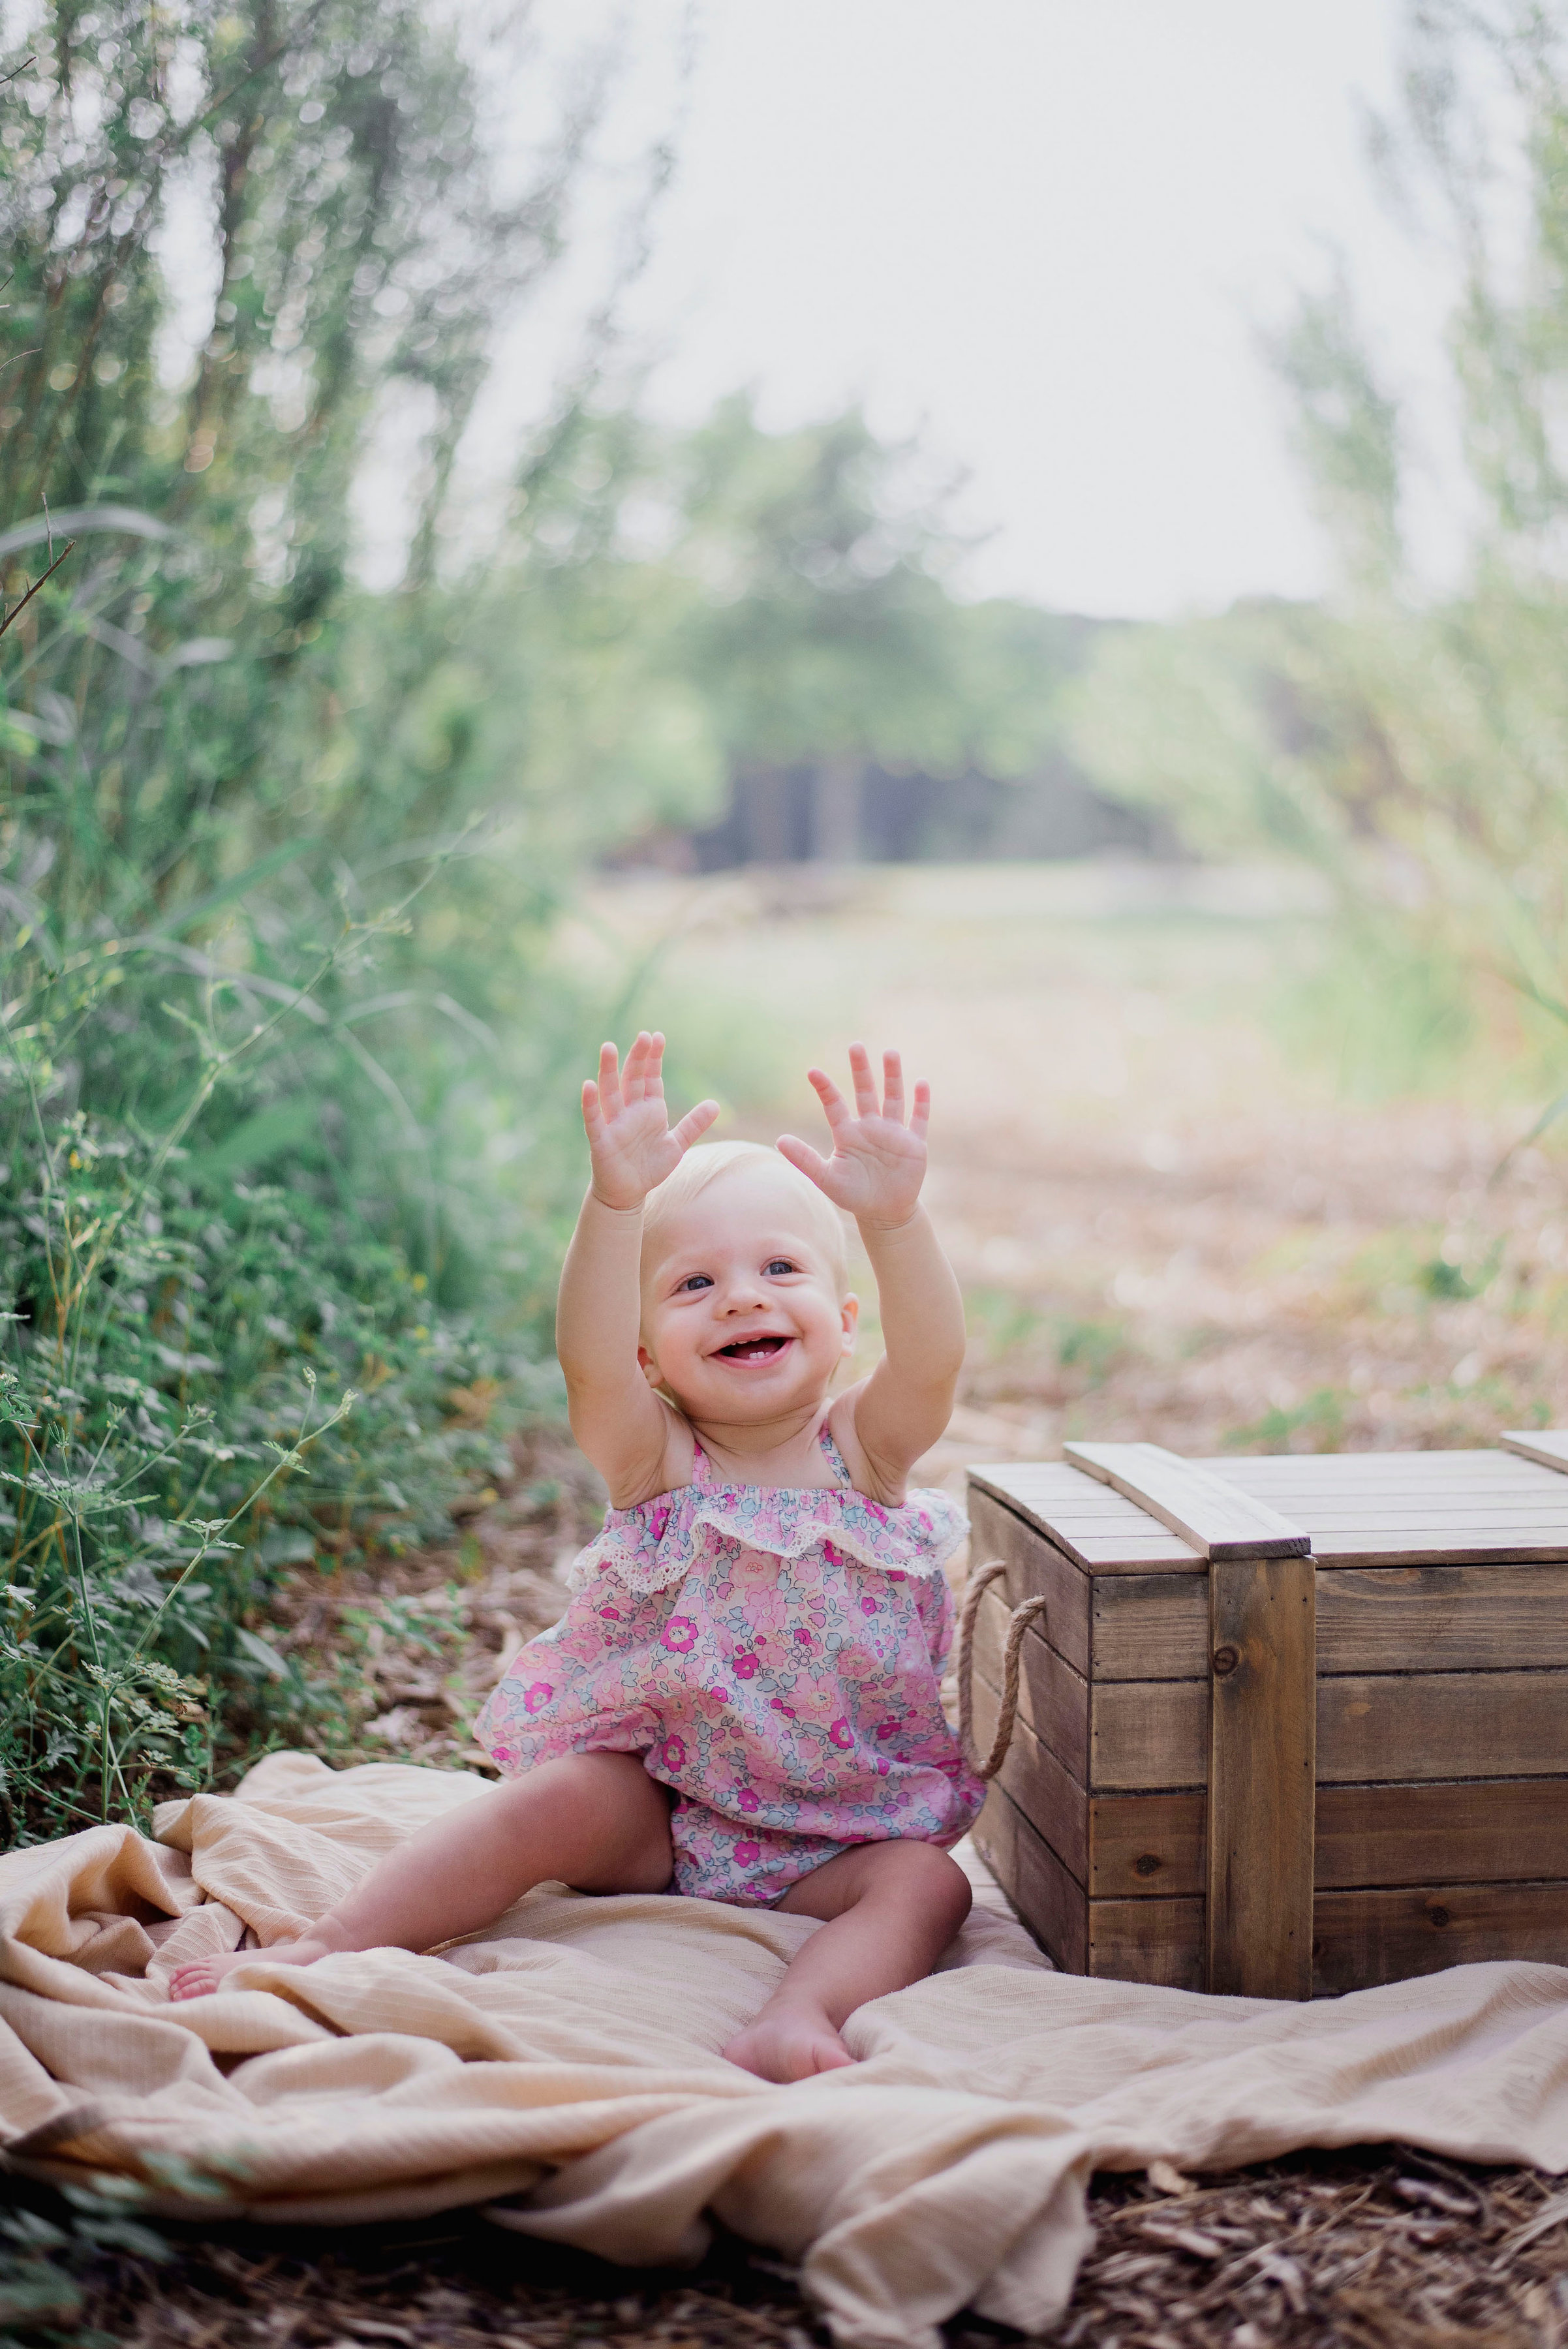 Austin Portrait Photographer First Birthday Session Texas Wildflowers Bluebonnets002.jpg